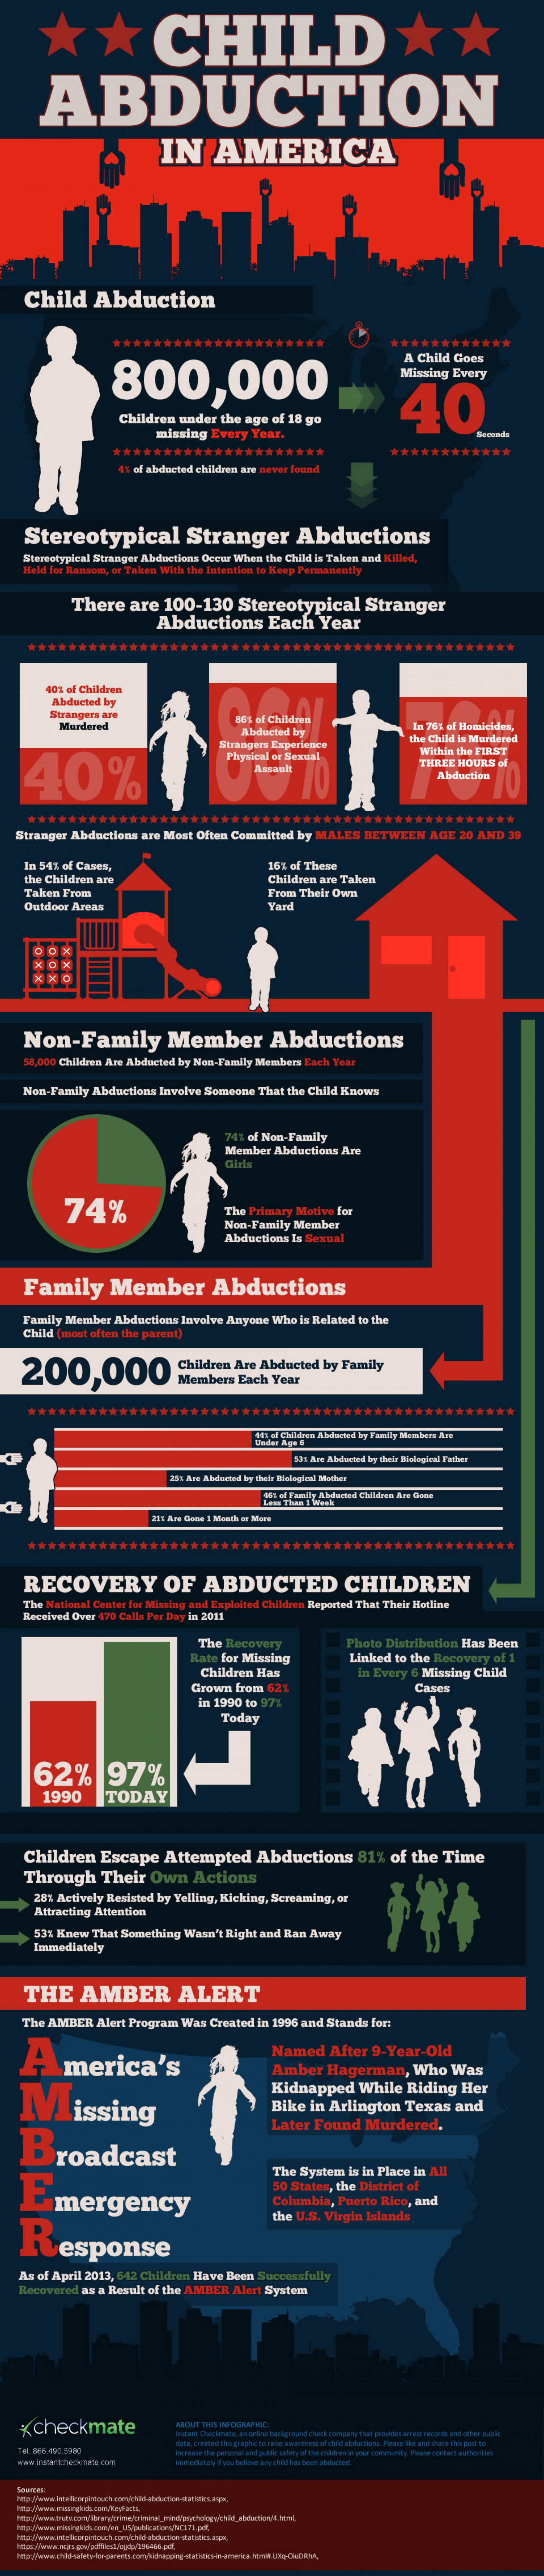 Child Abduction In America Infographic